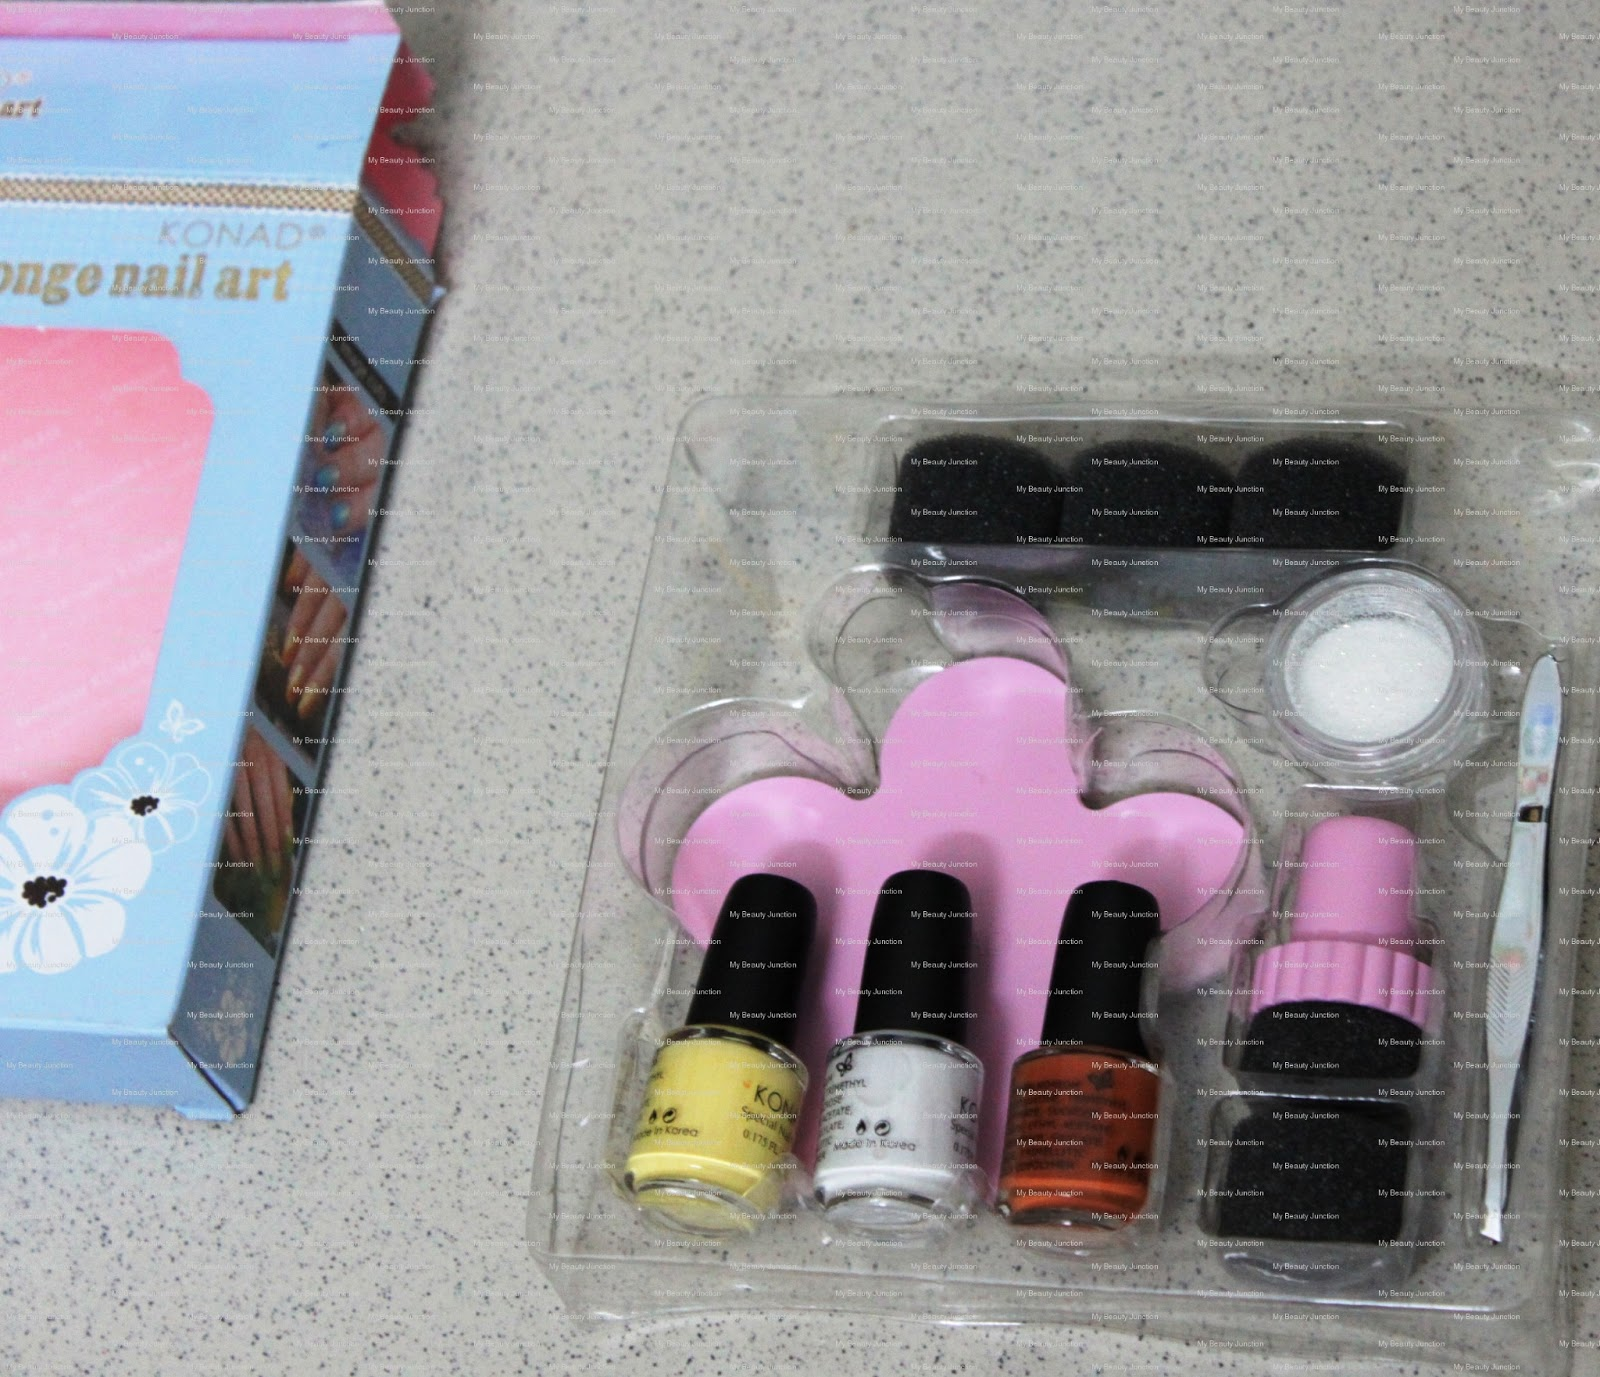 Konad Sponge Nail Art kit review, unboxing, photos